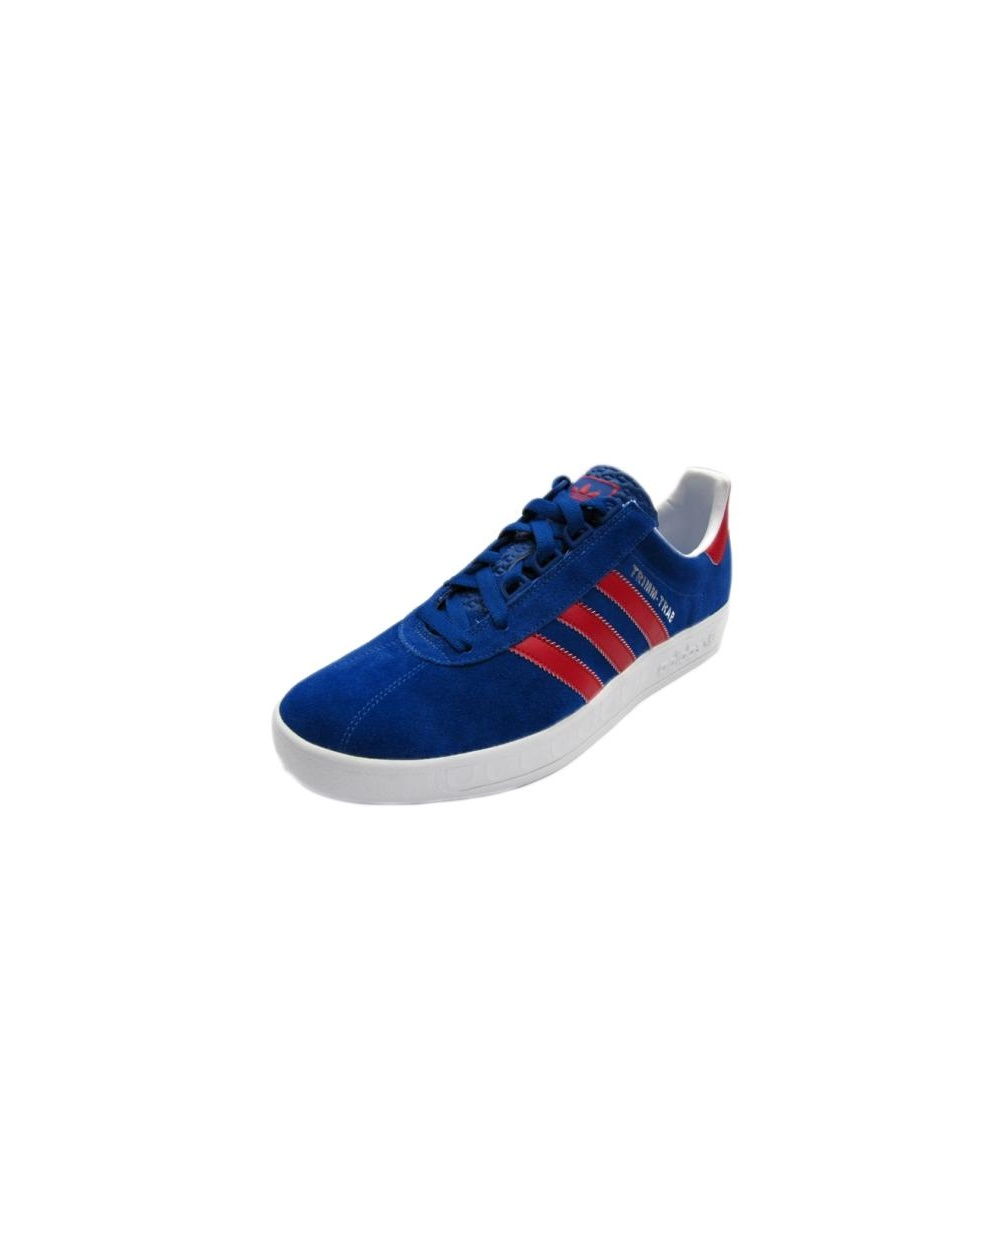 8d5245d03 Adidas Trimm Trab Trainers Royal Blue Red - Adidas Trimm Trab